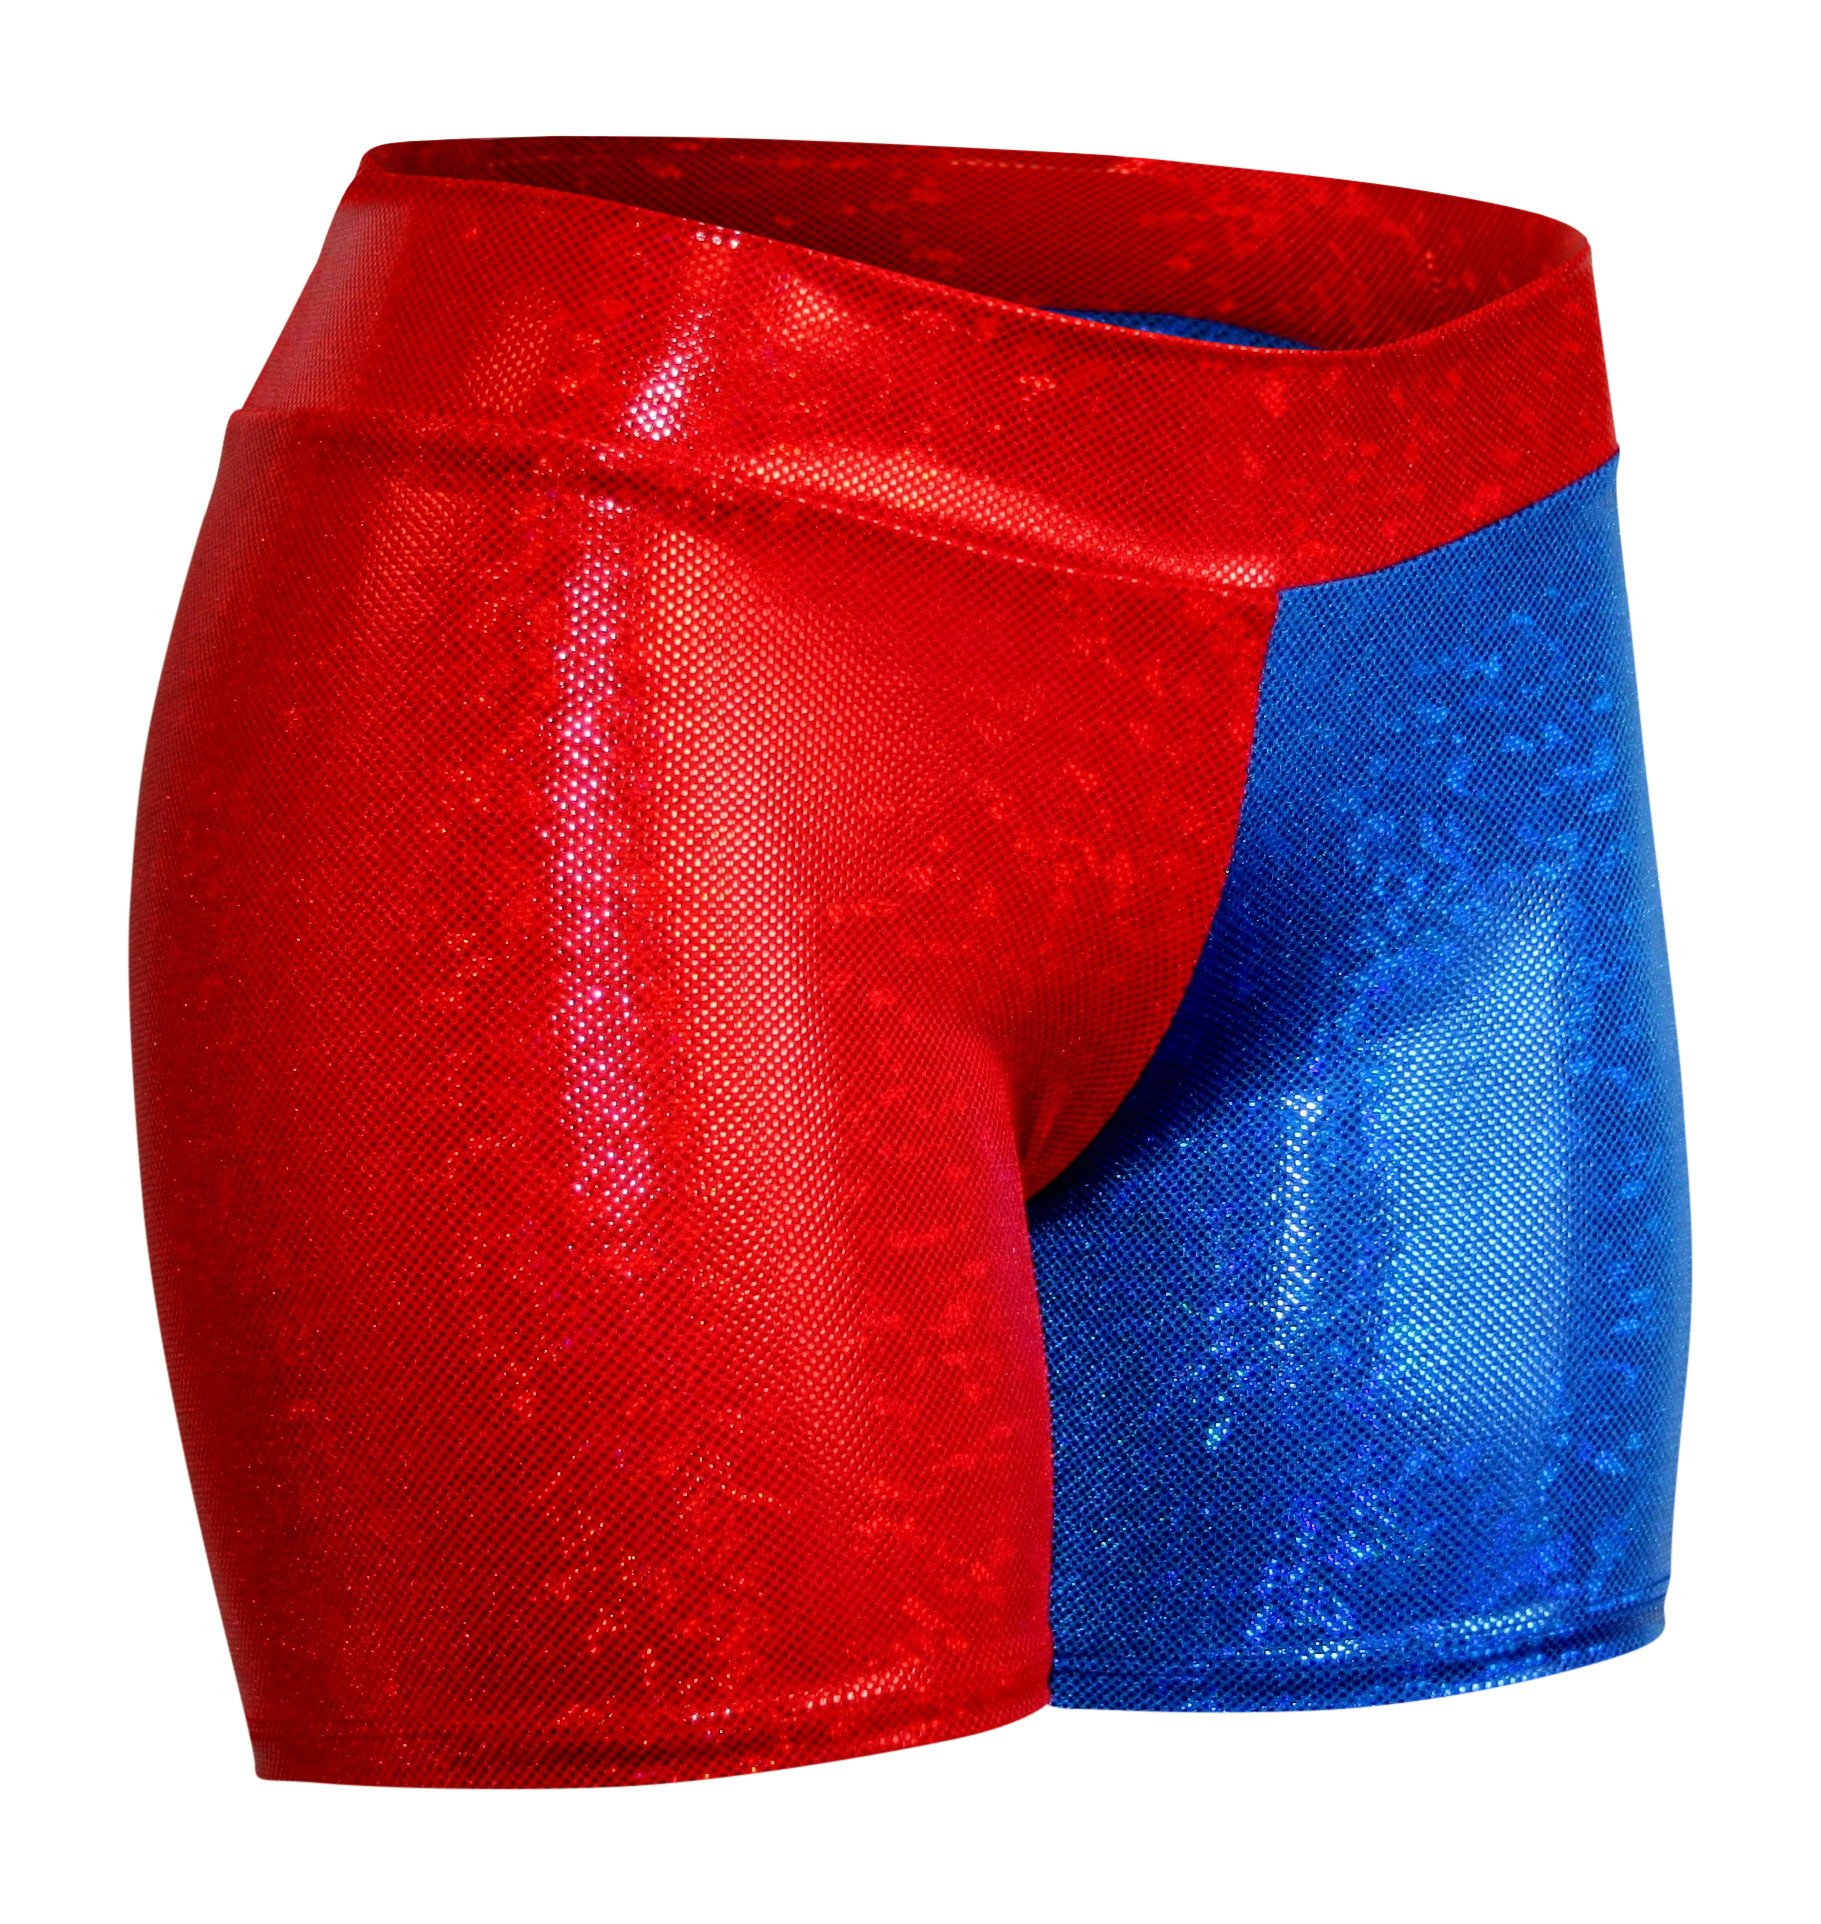 Dilly Duds Children's Red and Blue Holographic Spandex Shorts (X-Small, Red Blue)